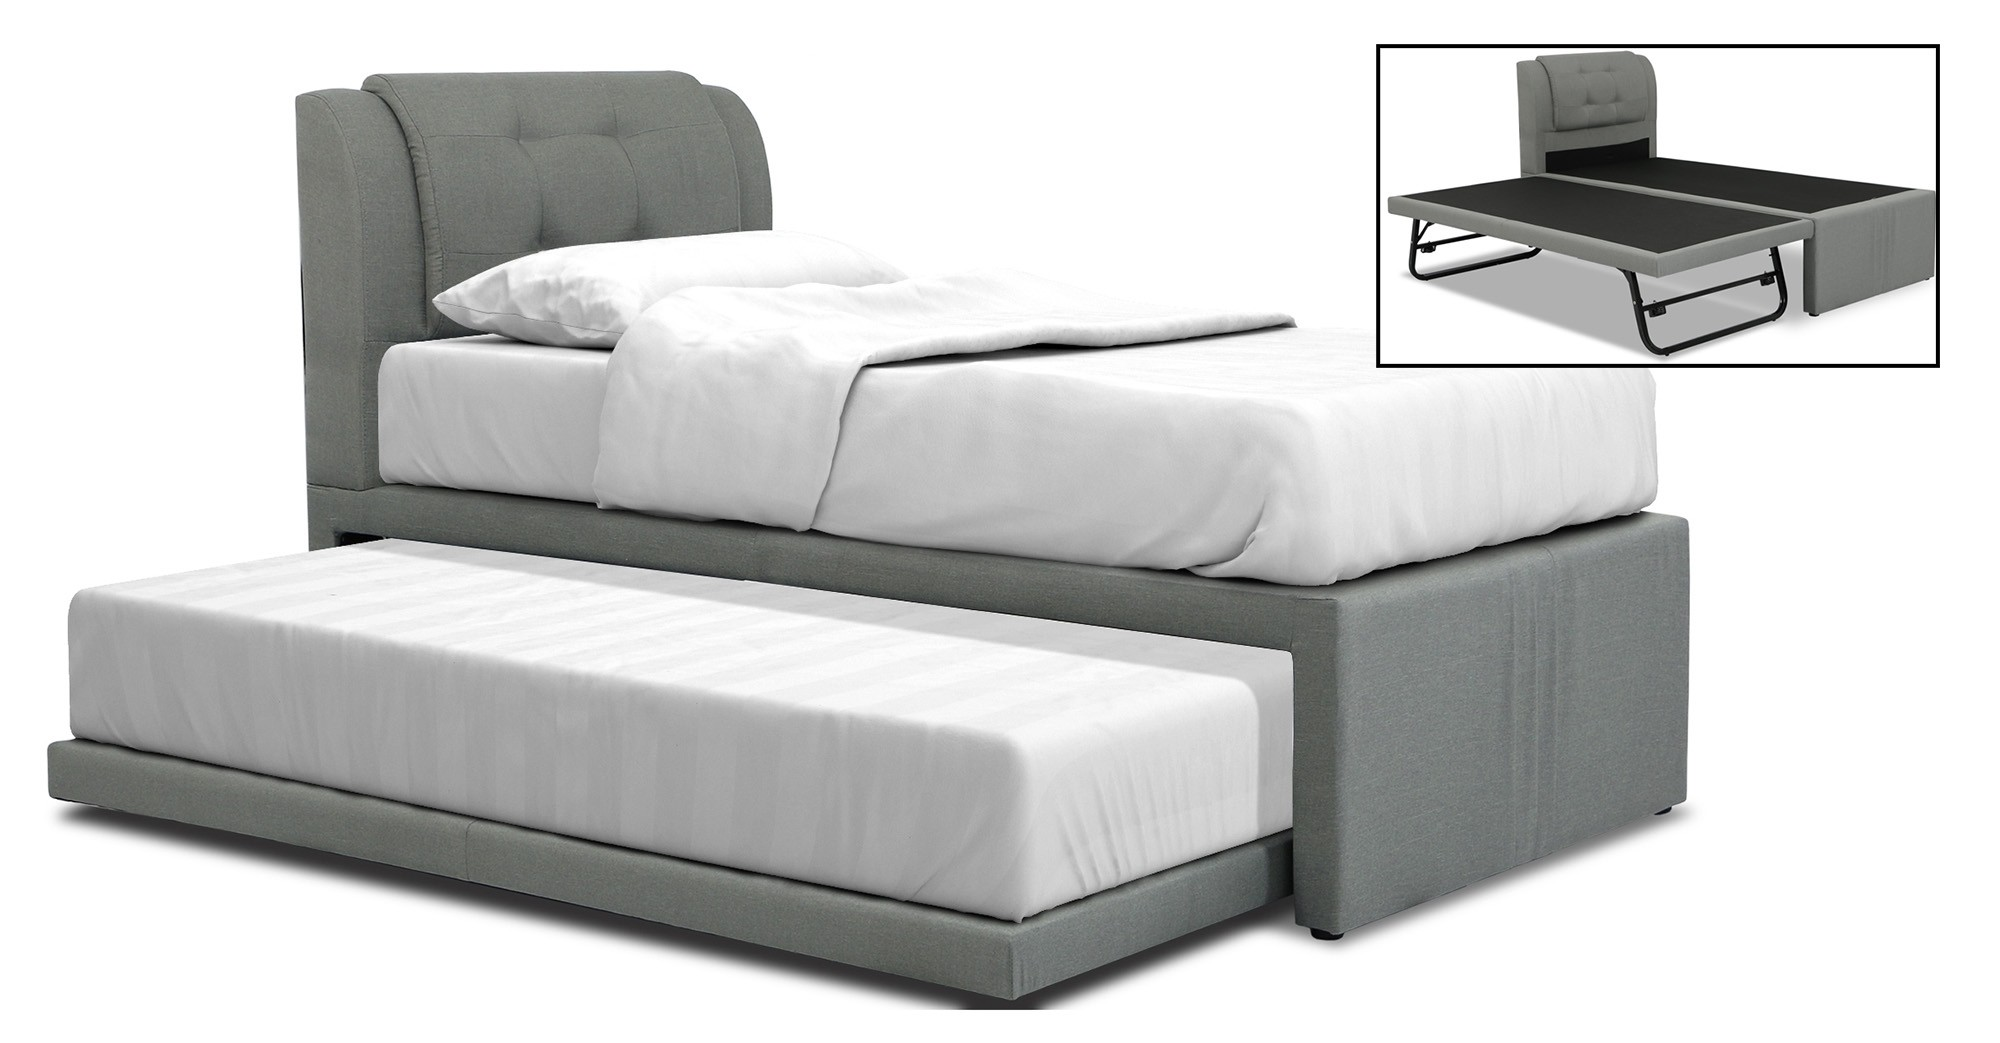 save off 513f7 643b5 Neak 2 in 1 Bedframe with Pull-out Trundle